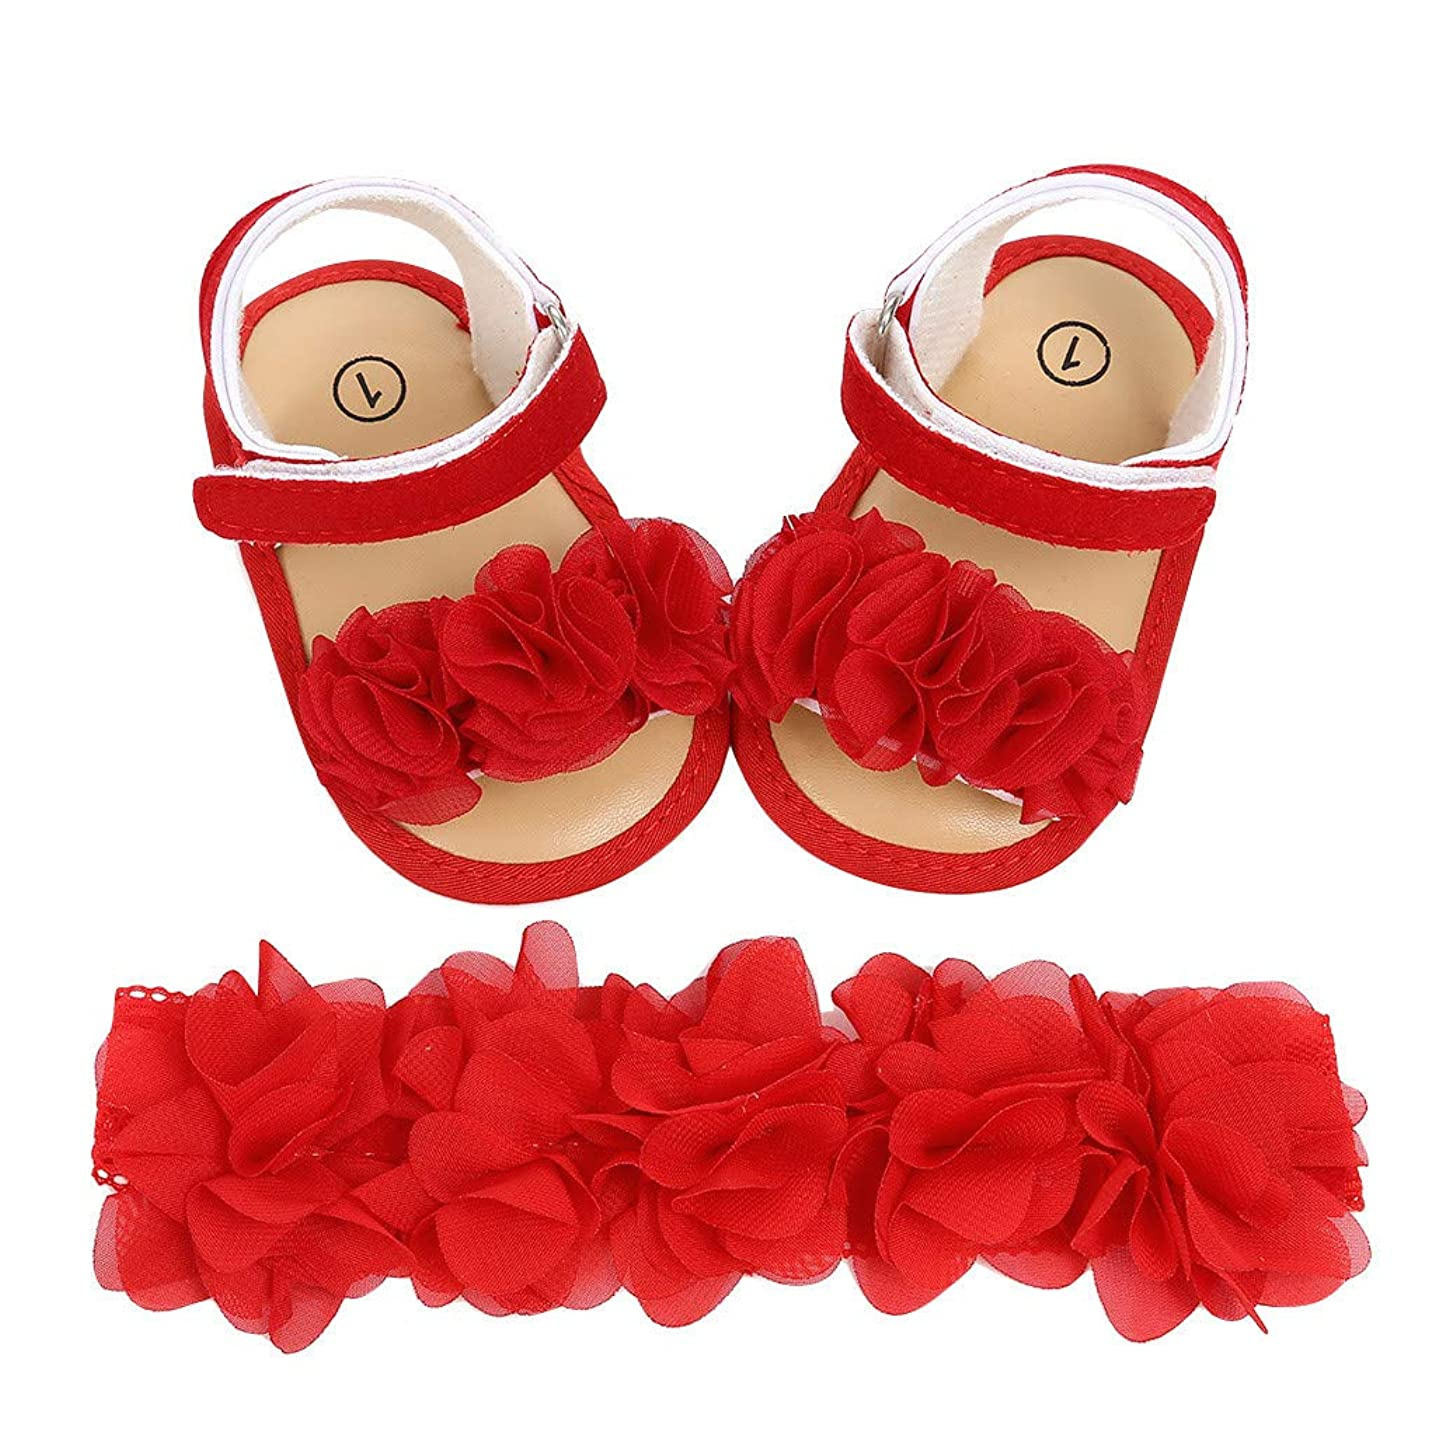 ?? Mealeaf ?? Newborn Baby Girls Boys Hairband +Flower Sequins Sandals First Walkers Shoes(Red,11)